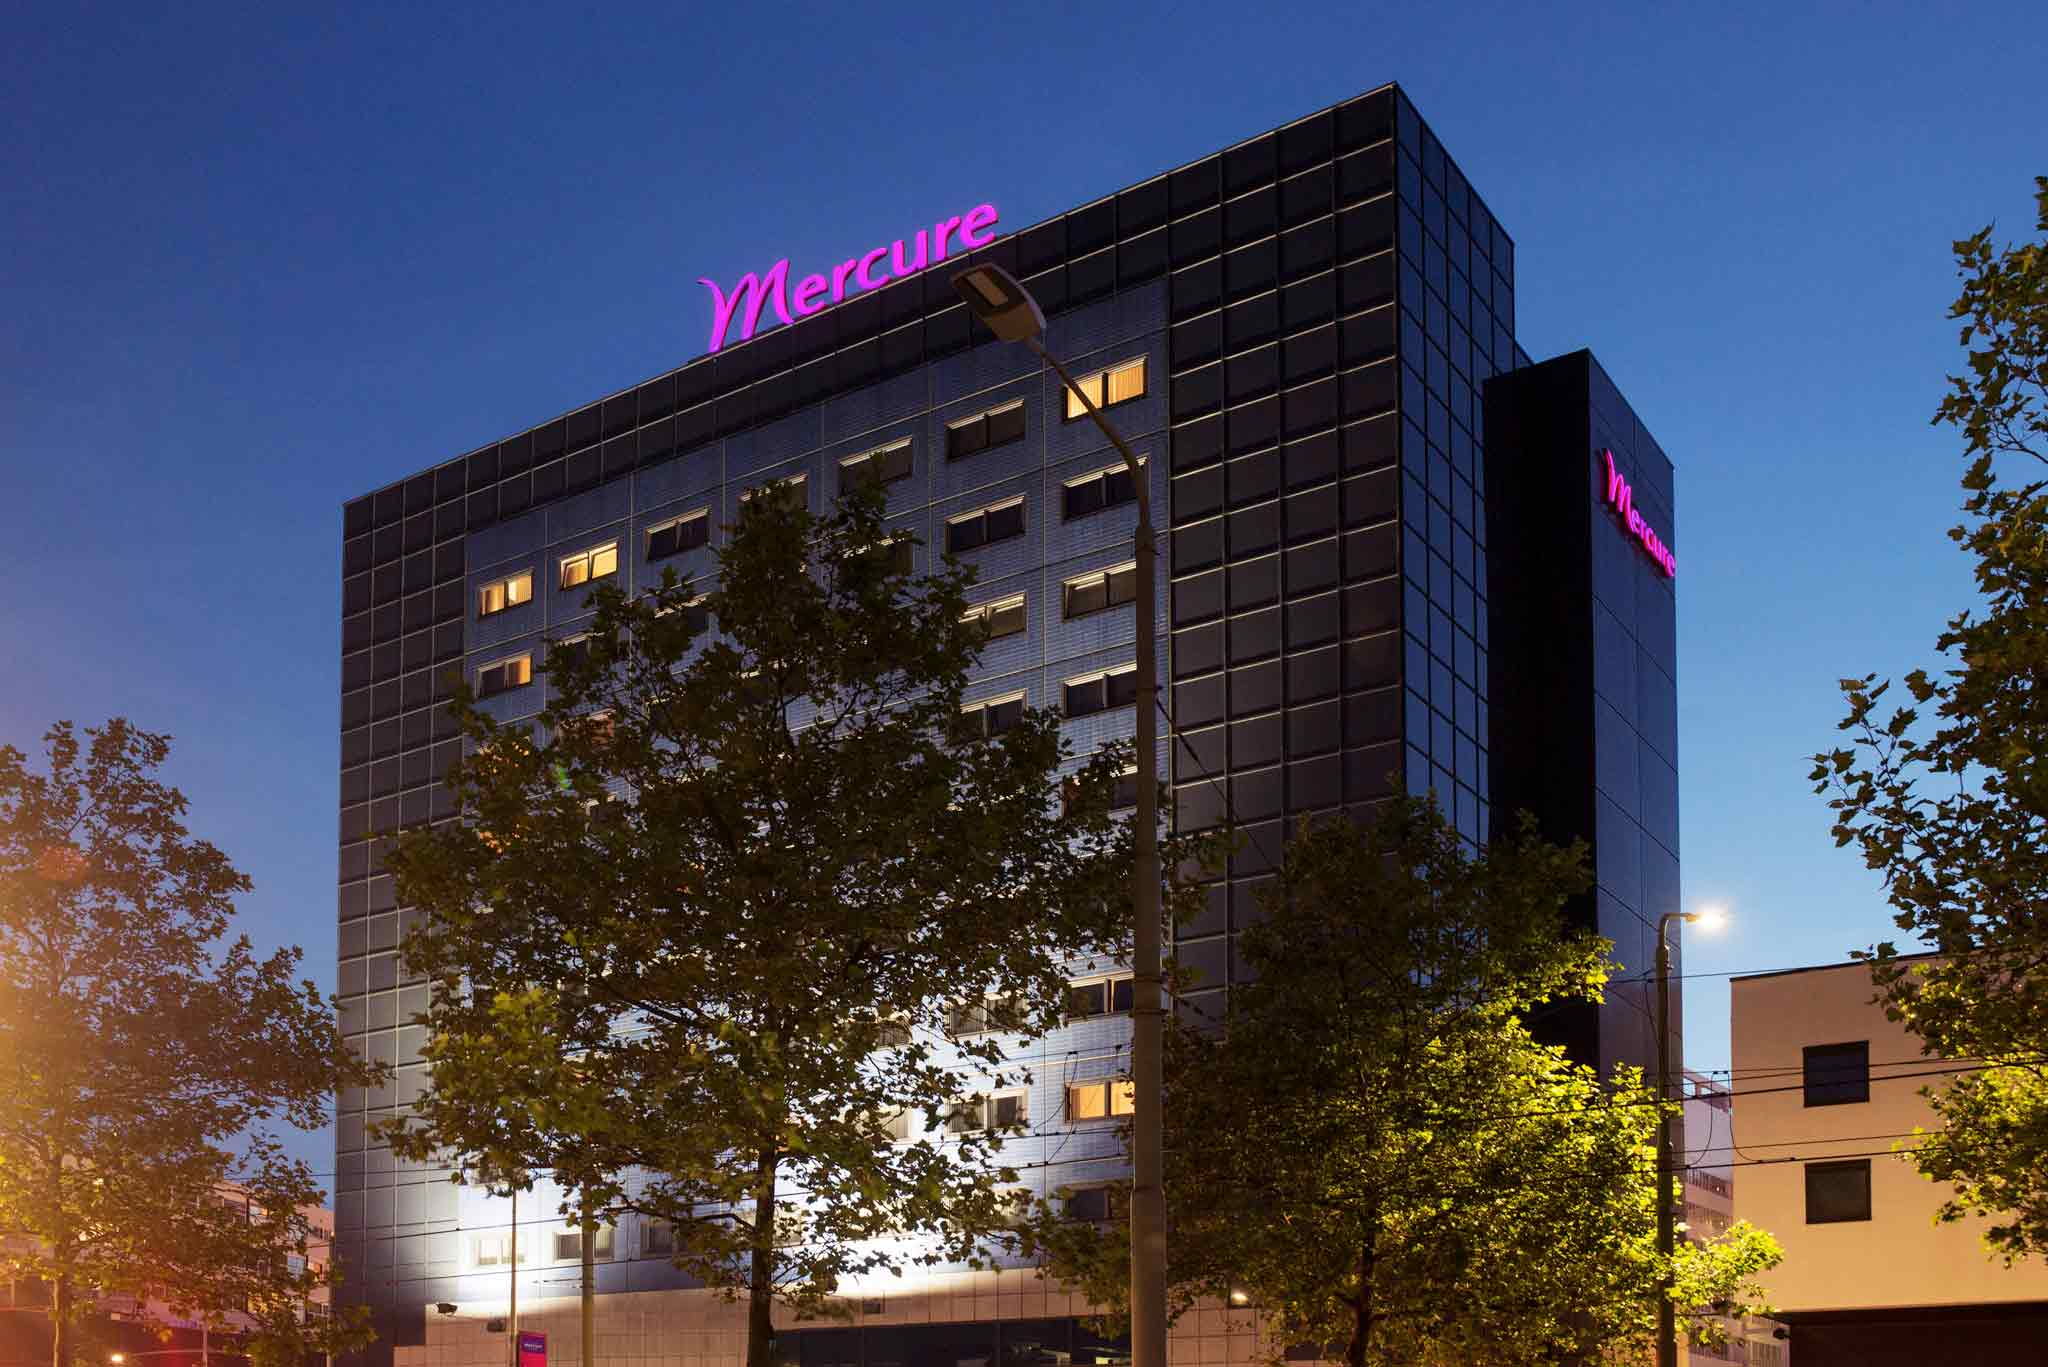 Mercure Den Haag Central 外観